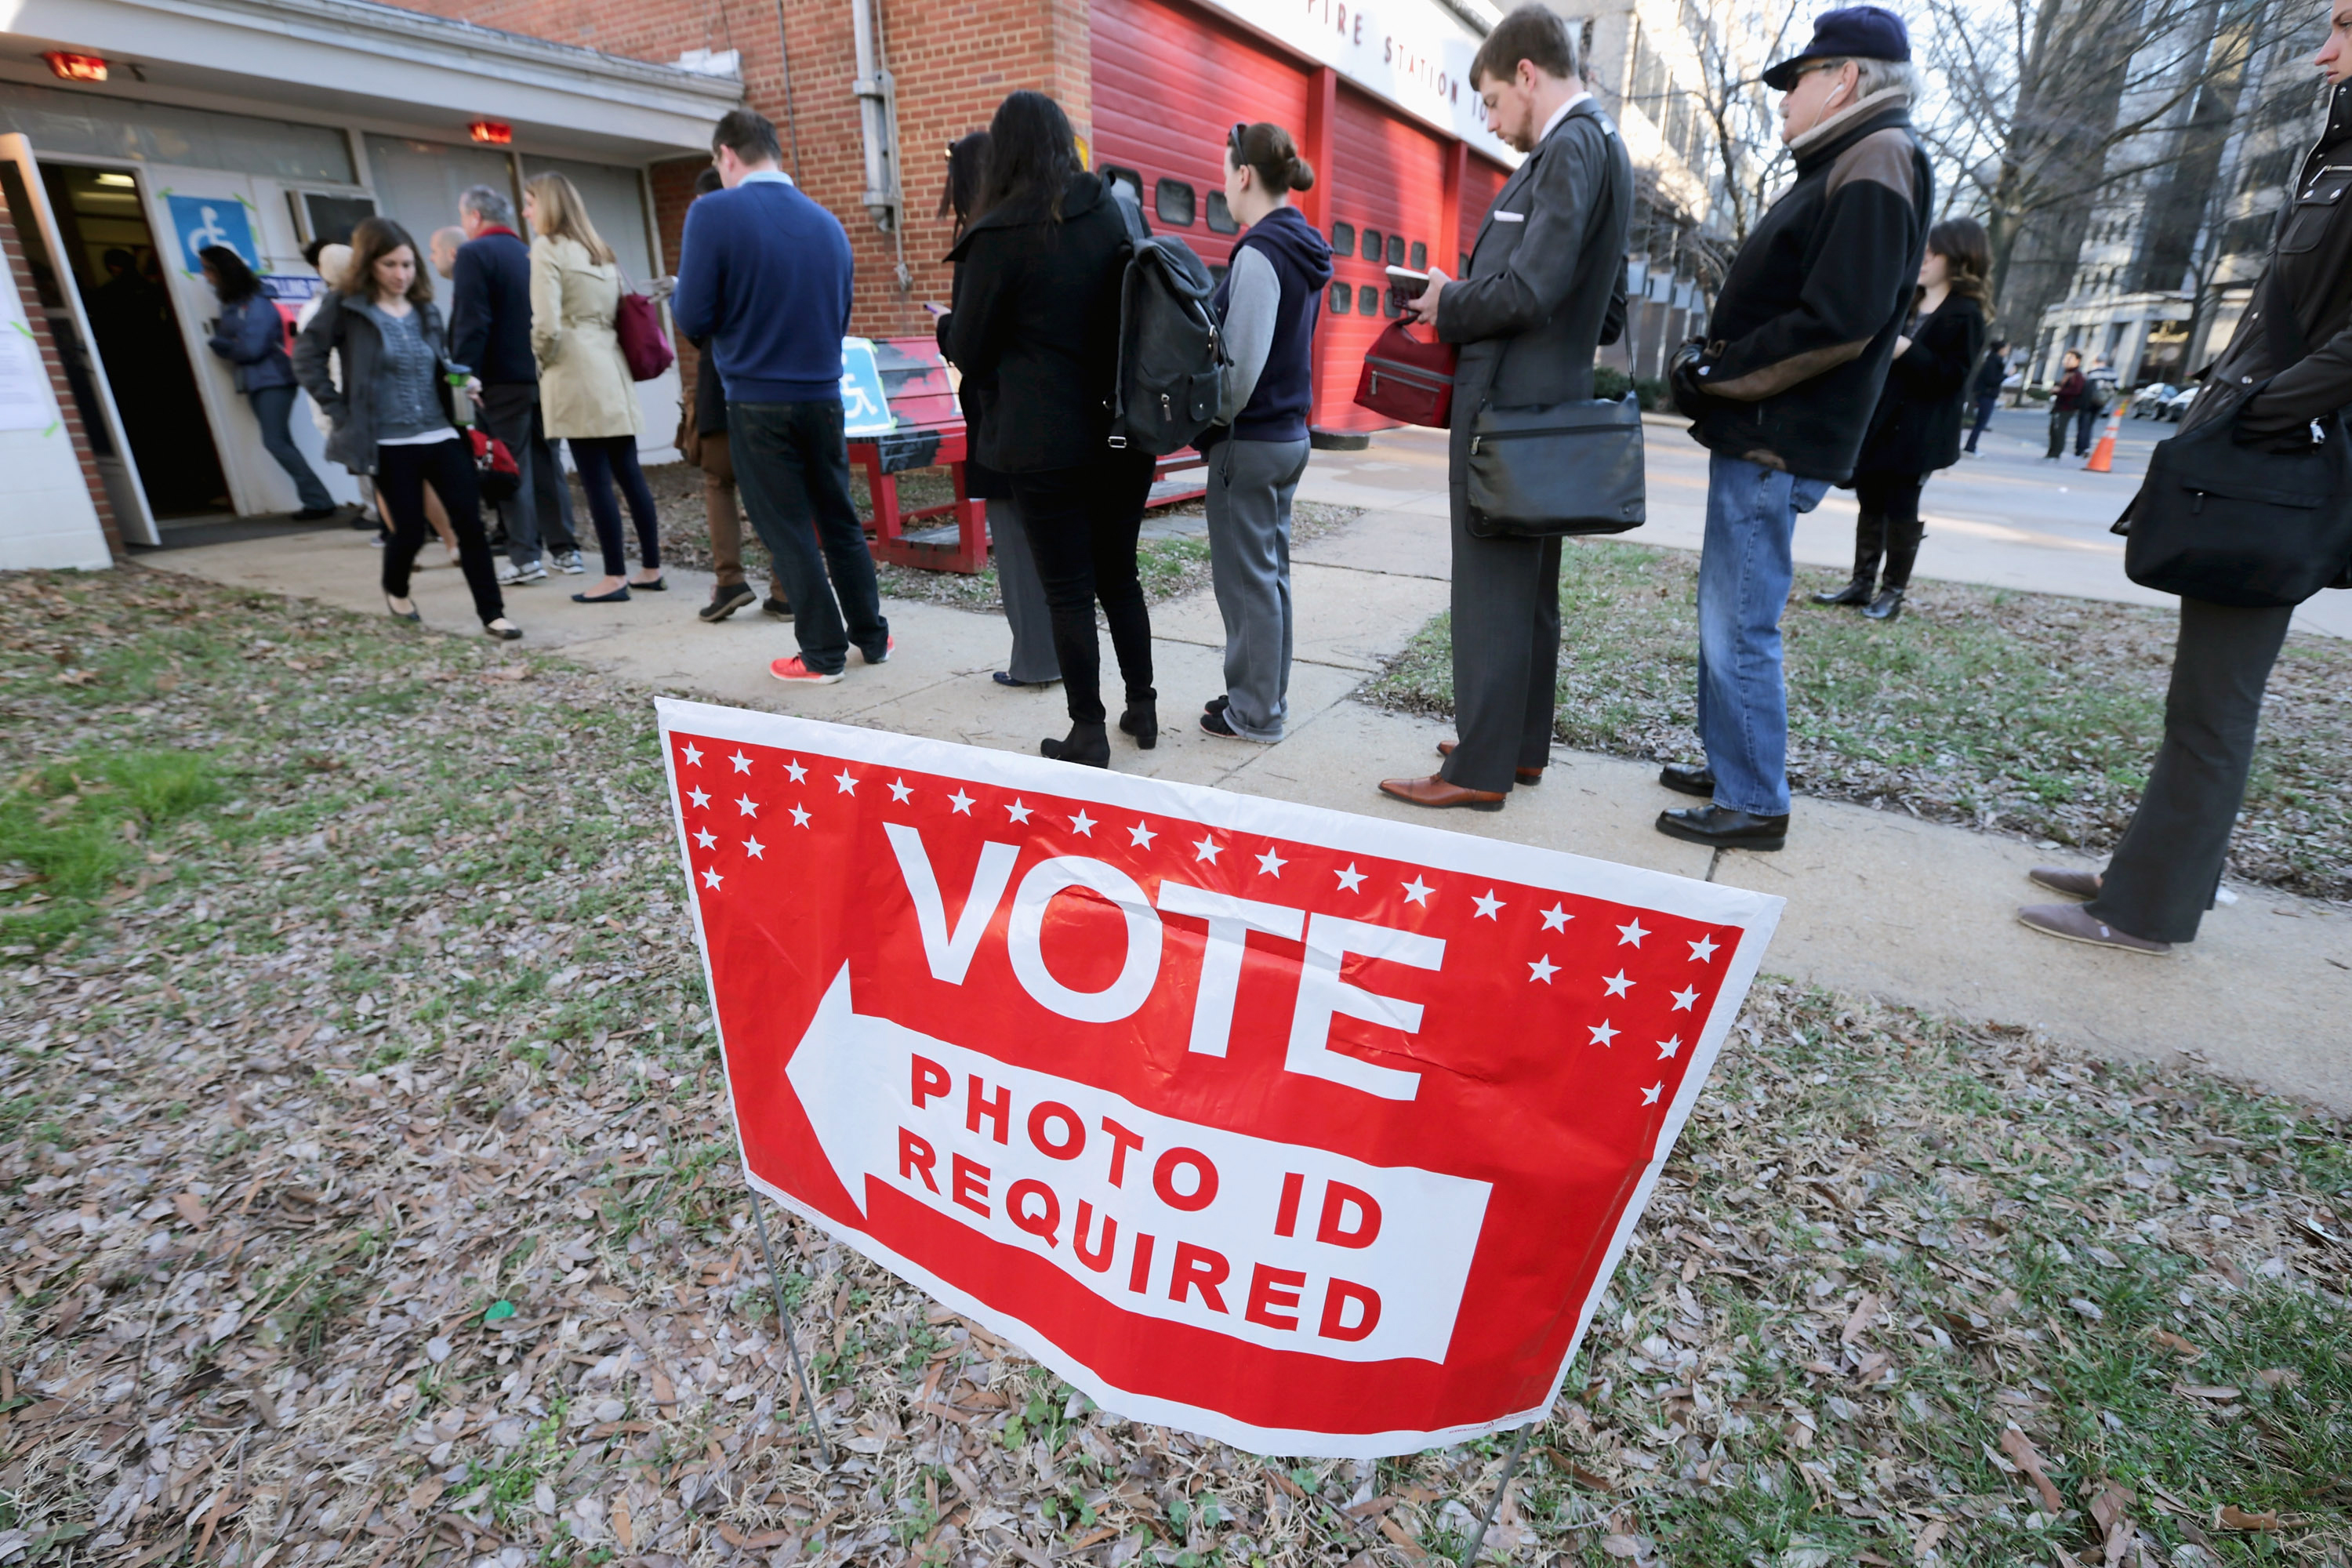 North Carolina appeals court blocks voter ID law